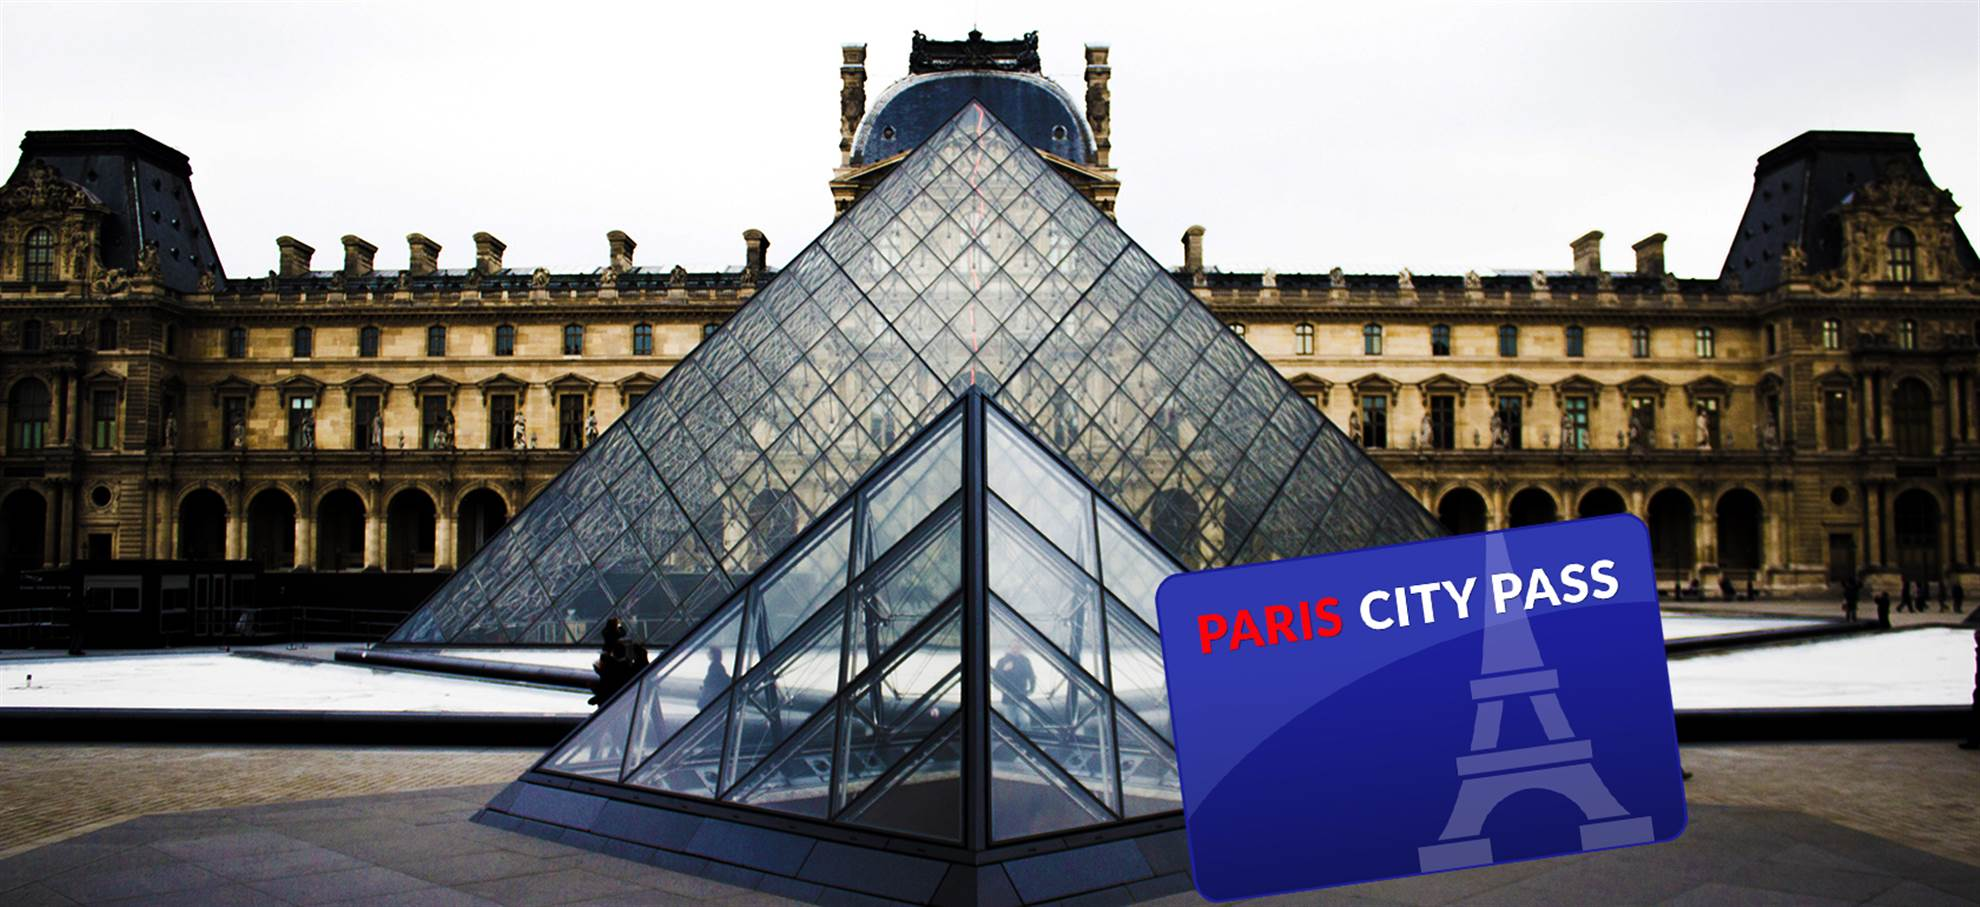 Le Louvre Billet Coupe File Pass De La Ville De Paris